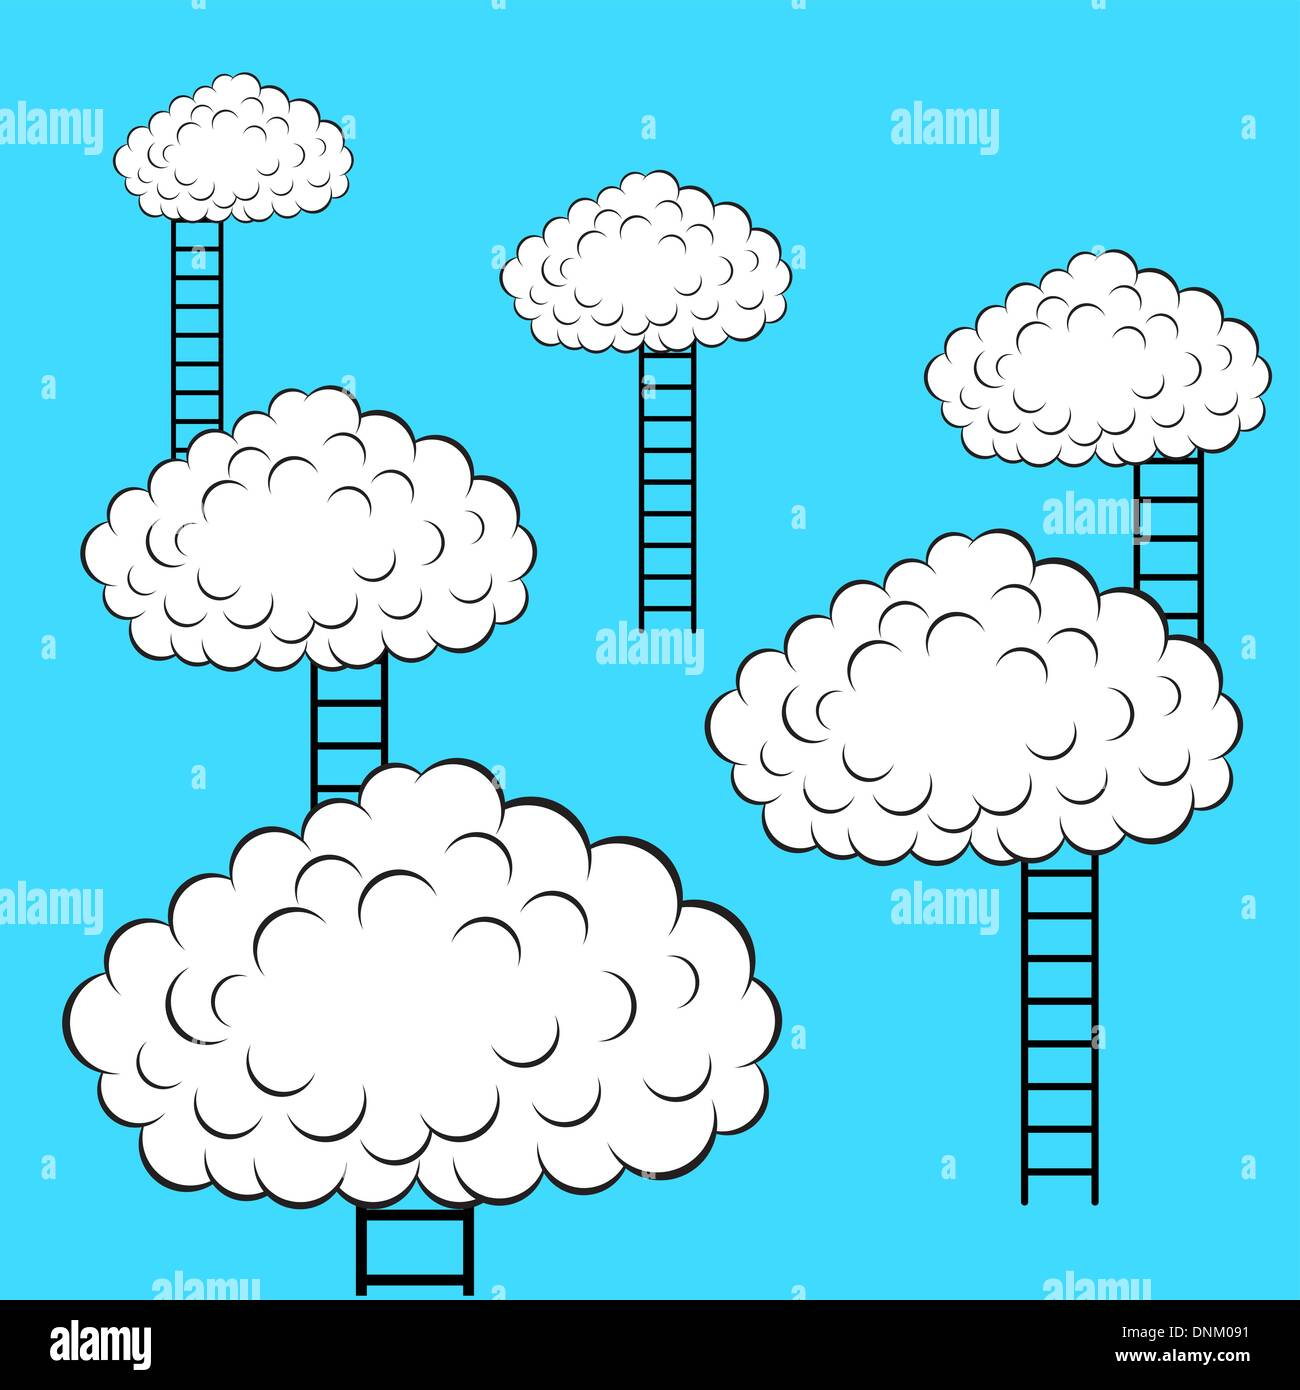 Clouds with stairs, vector illustration Stock-Vektorgrafik